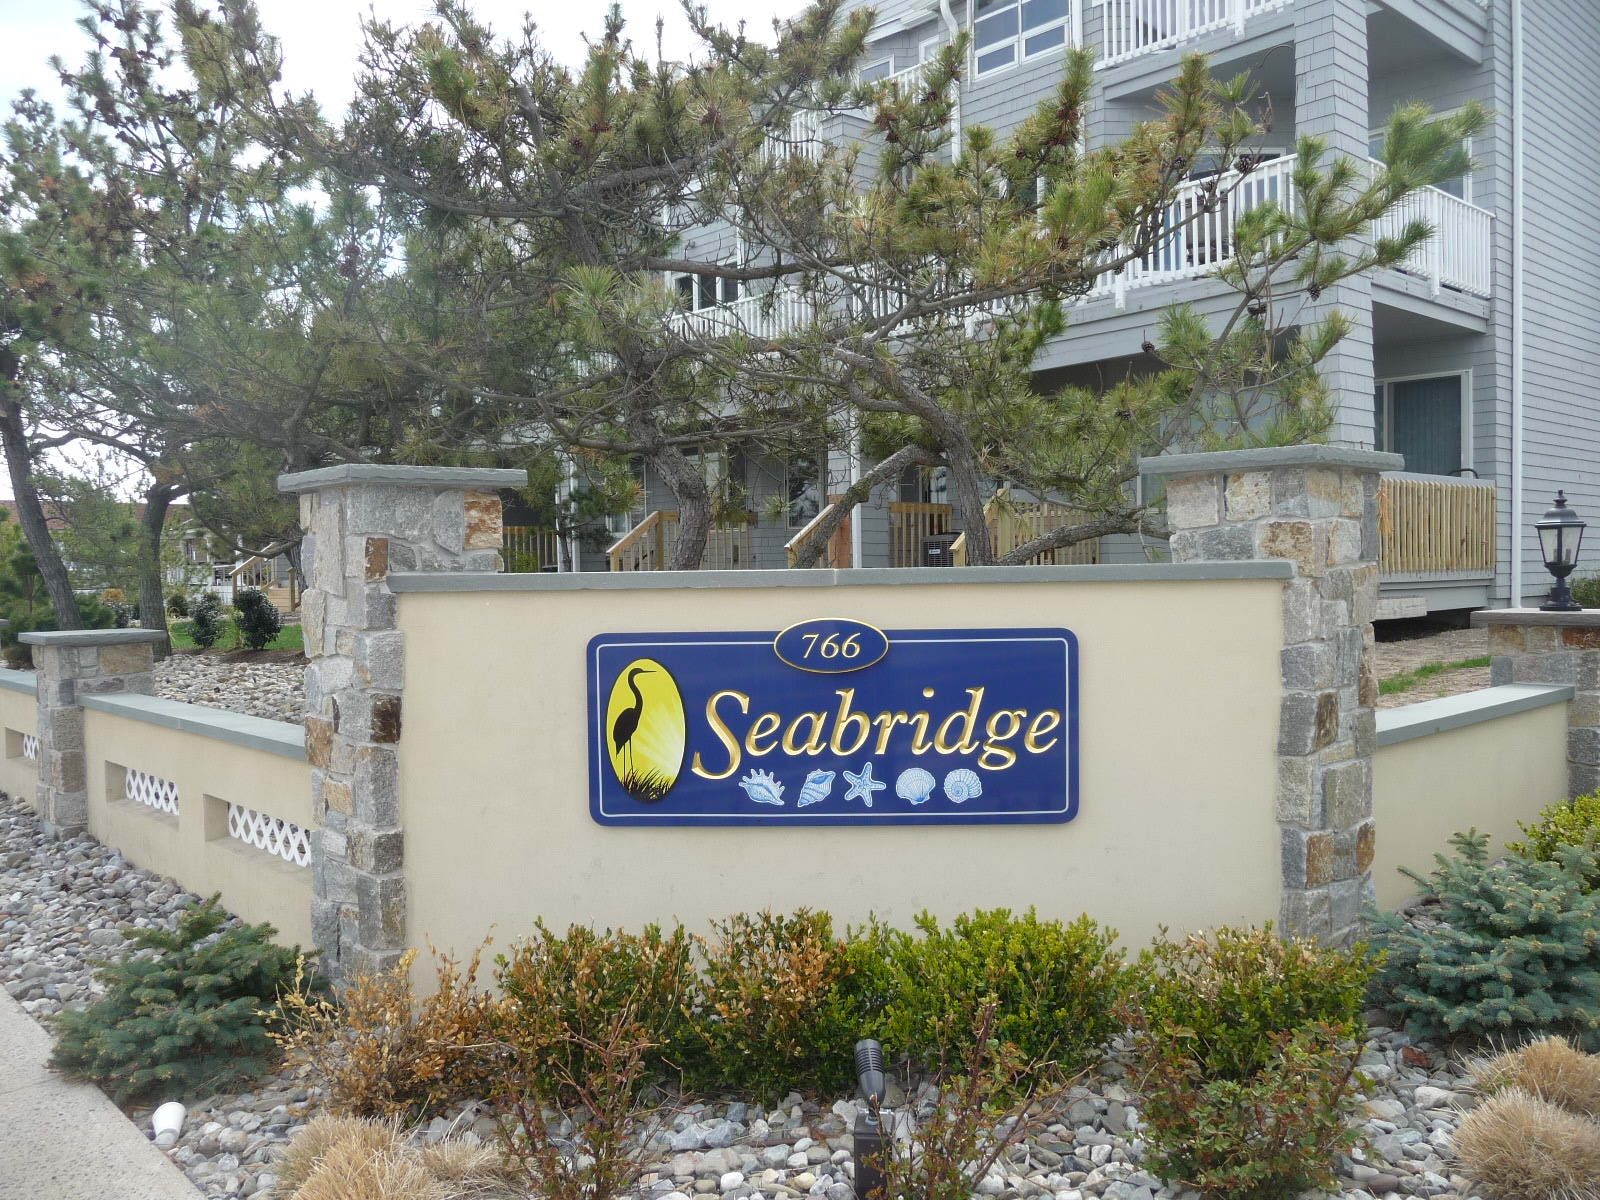 Seabridge condos, located at 766 Ocean Ave in Sea Bright are on the Shrewsbury River